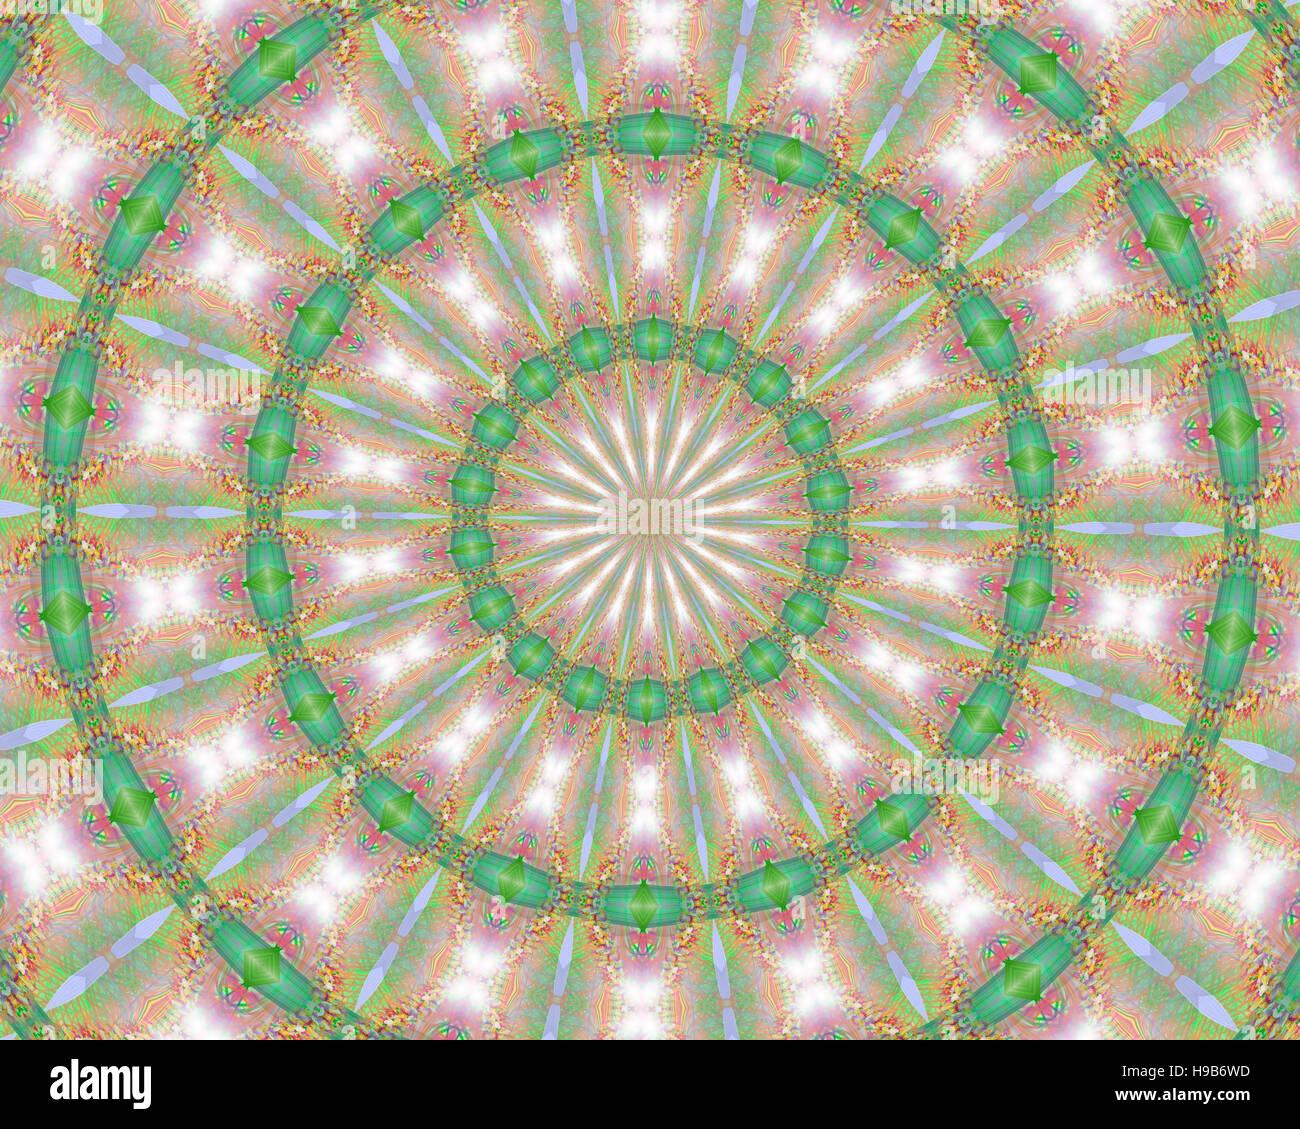 Mandala - digitale Kunst Stockbild